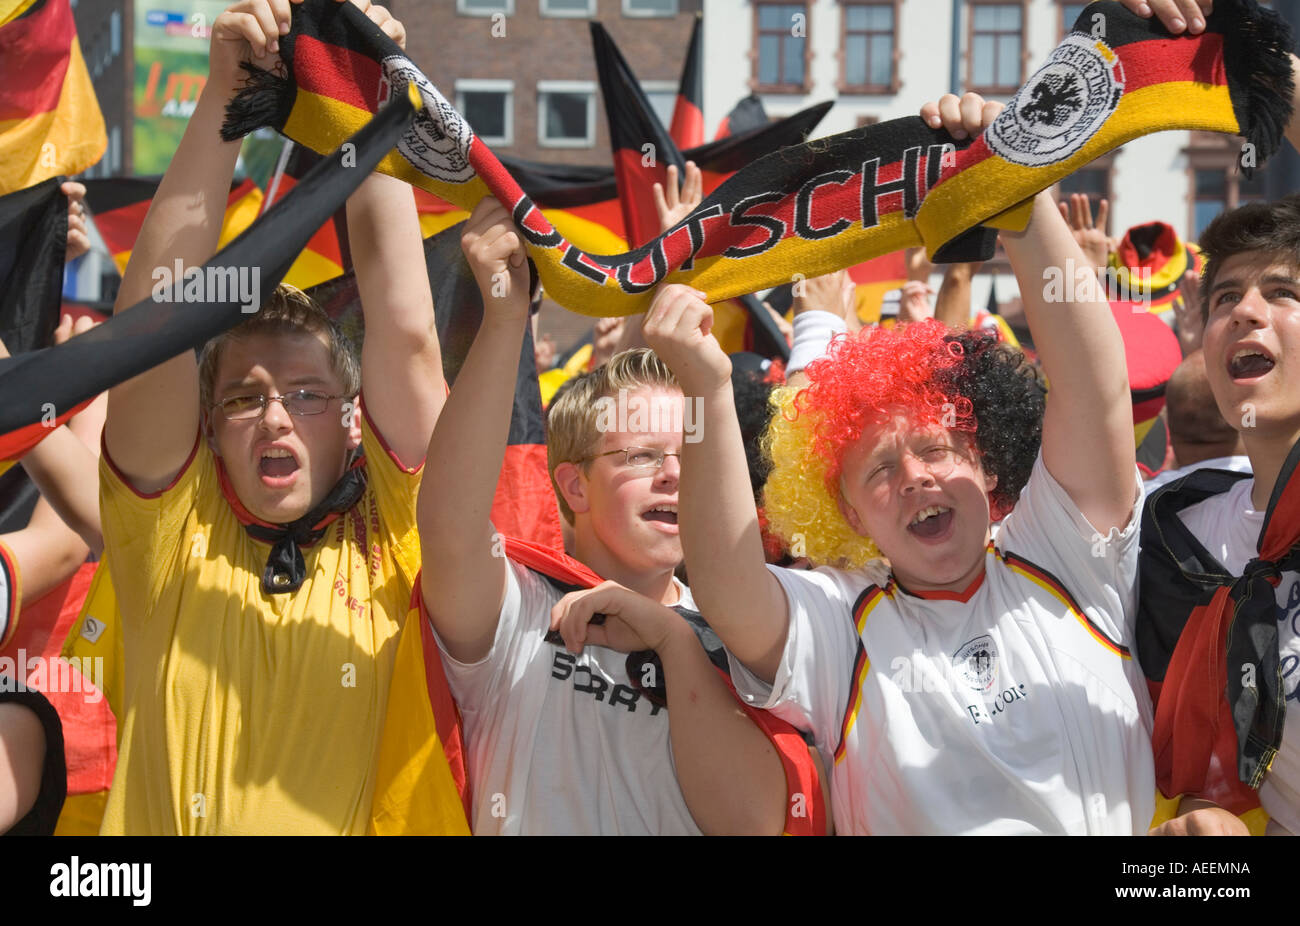 German Football Fans Cheering In Good Mood At A Football World Cup